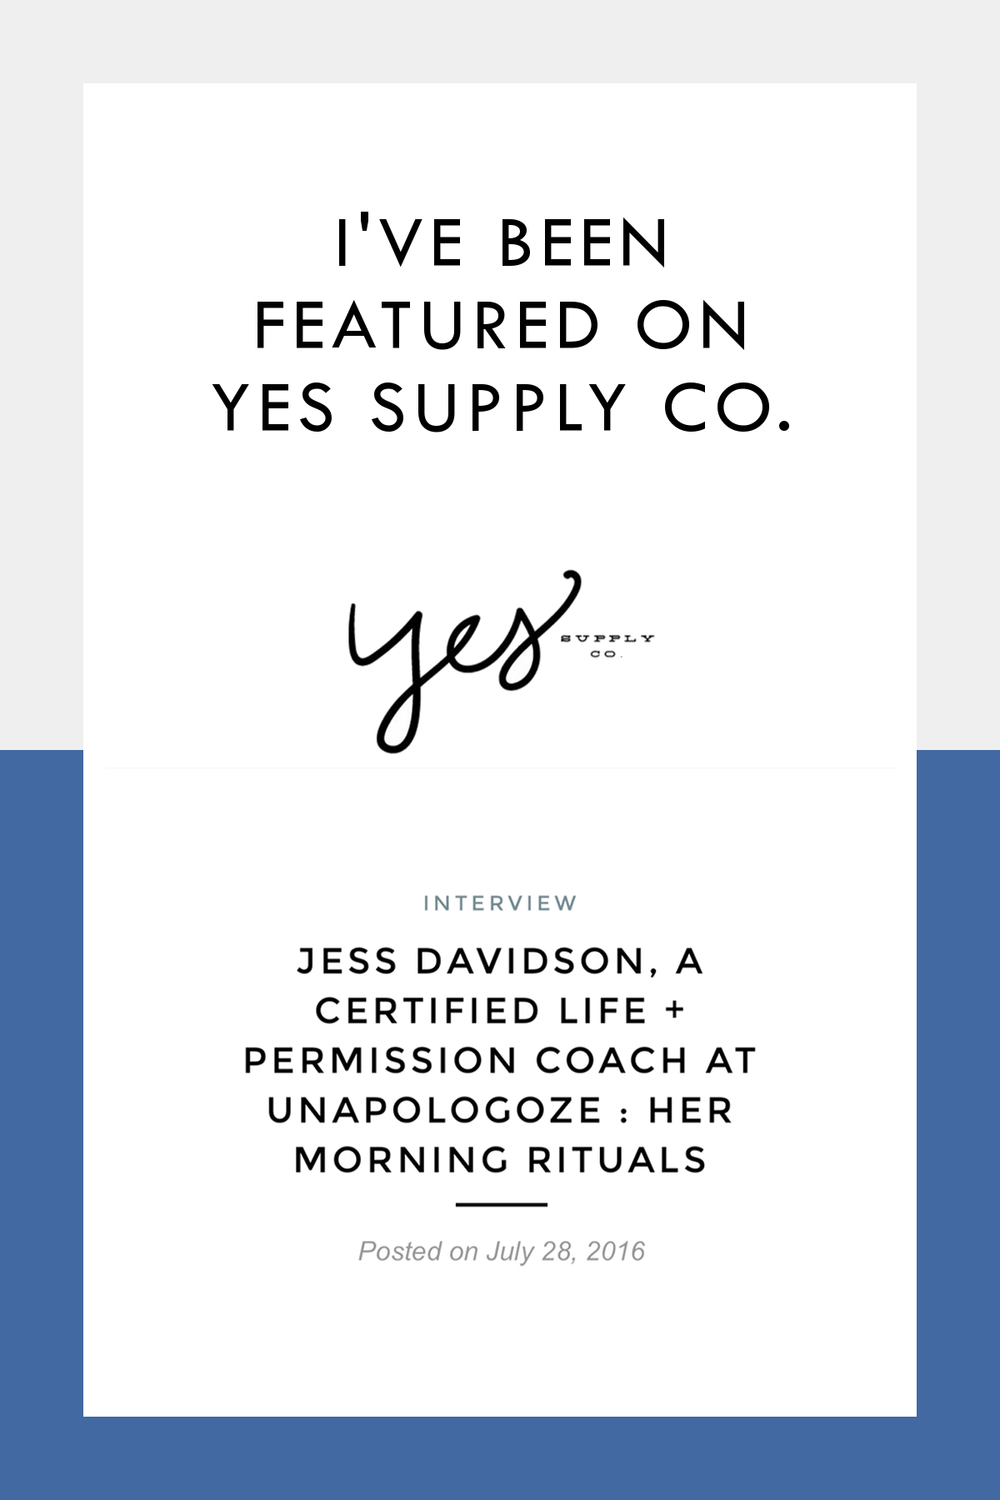 Jess + Unapologize Featured on Yes Supply Co. // Unapologize.com